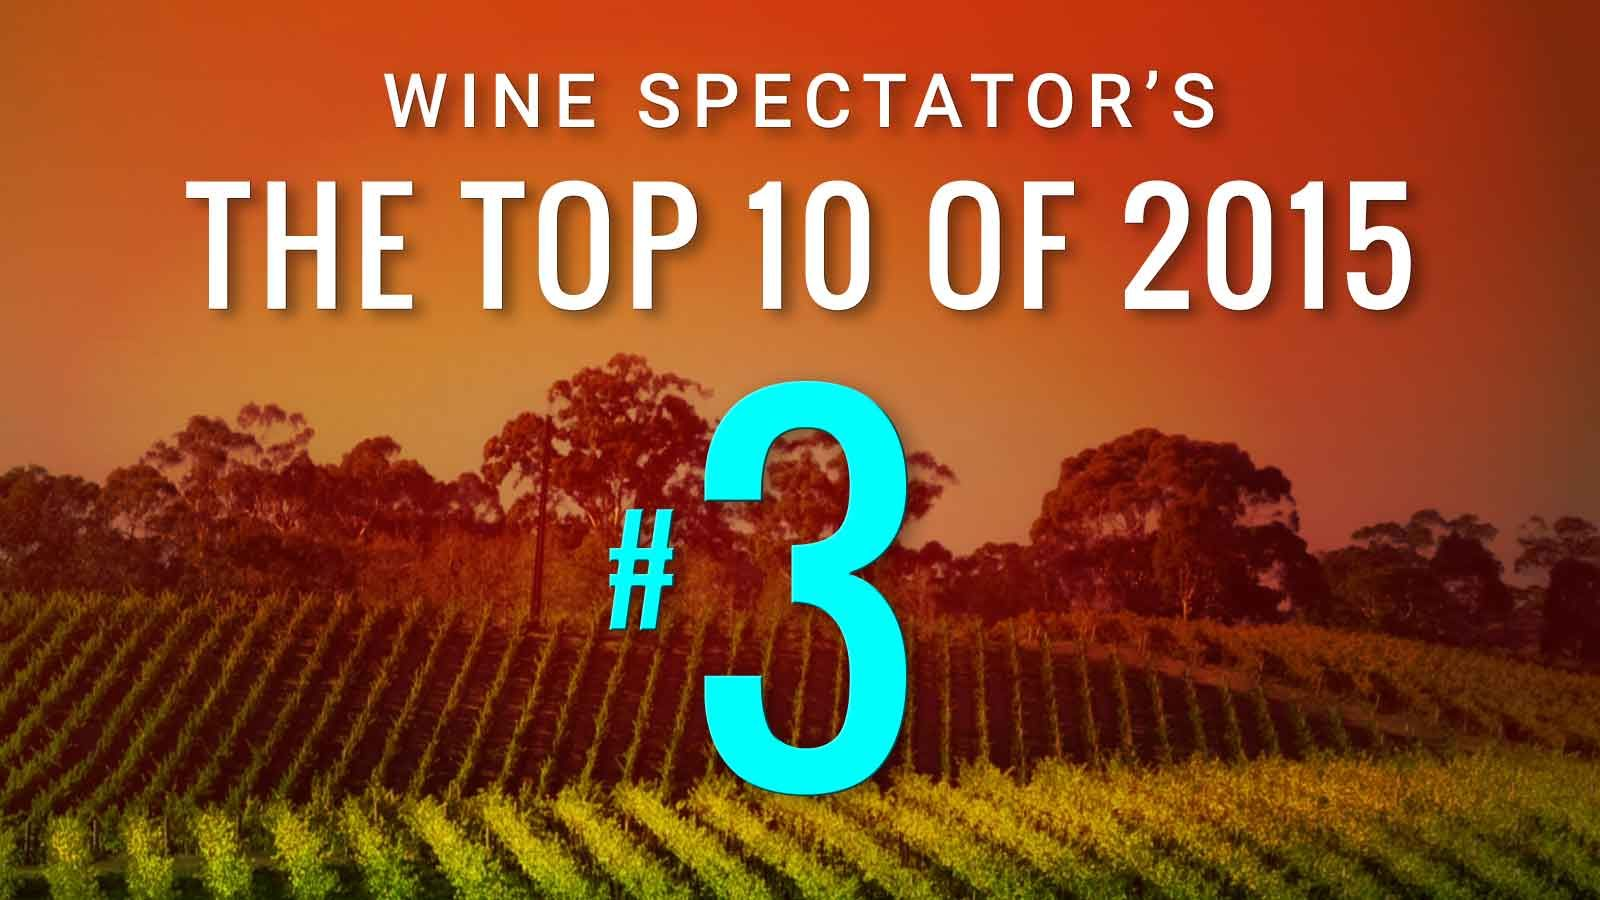 Top 10 Wines Of 2015 Wine Spectator S Top 100 Wine Spectator Wines Wine And Beer